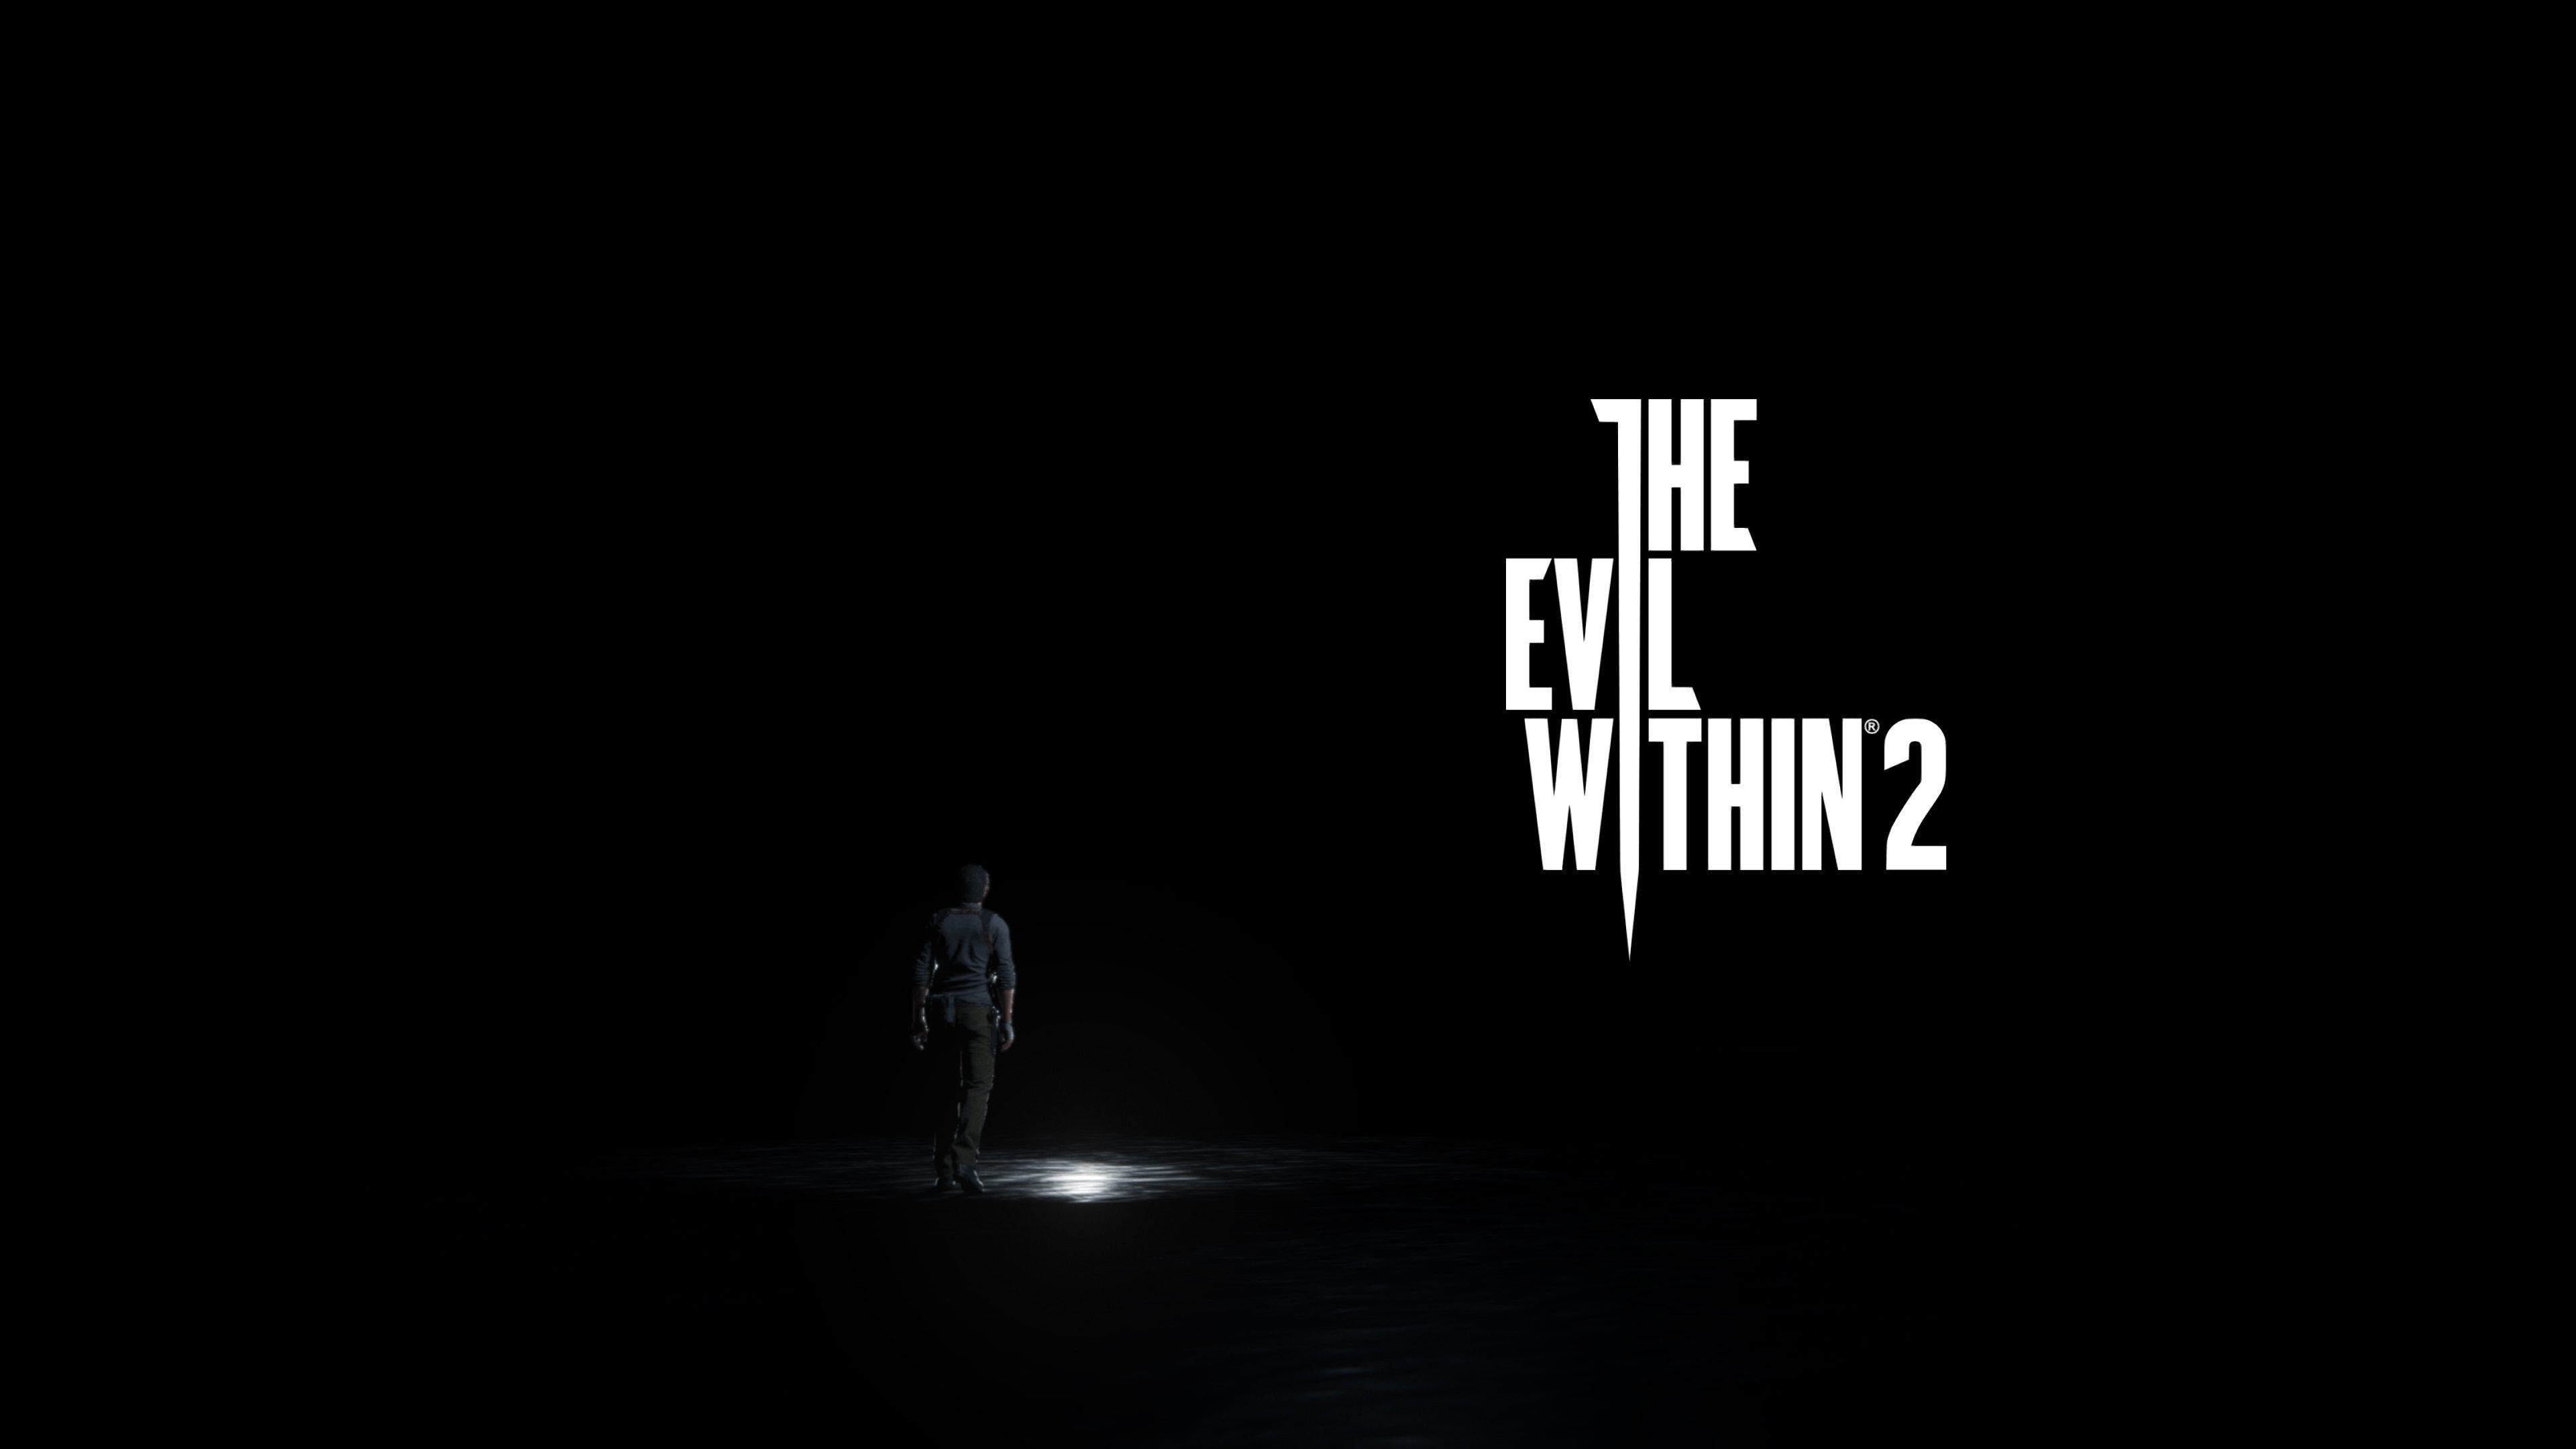 3840x2160 The Evil Within 2 4k Hd Wallpaper Backgrounds Free